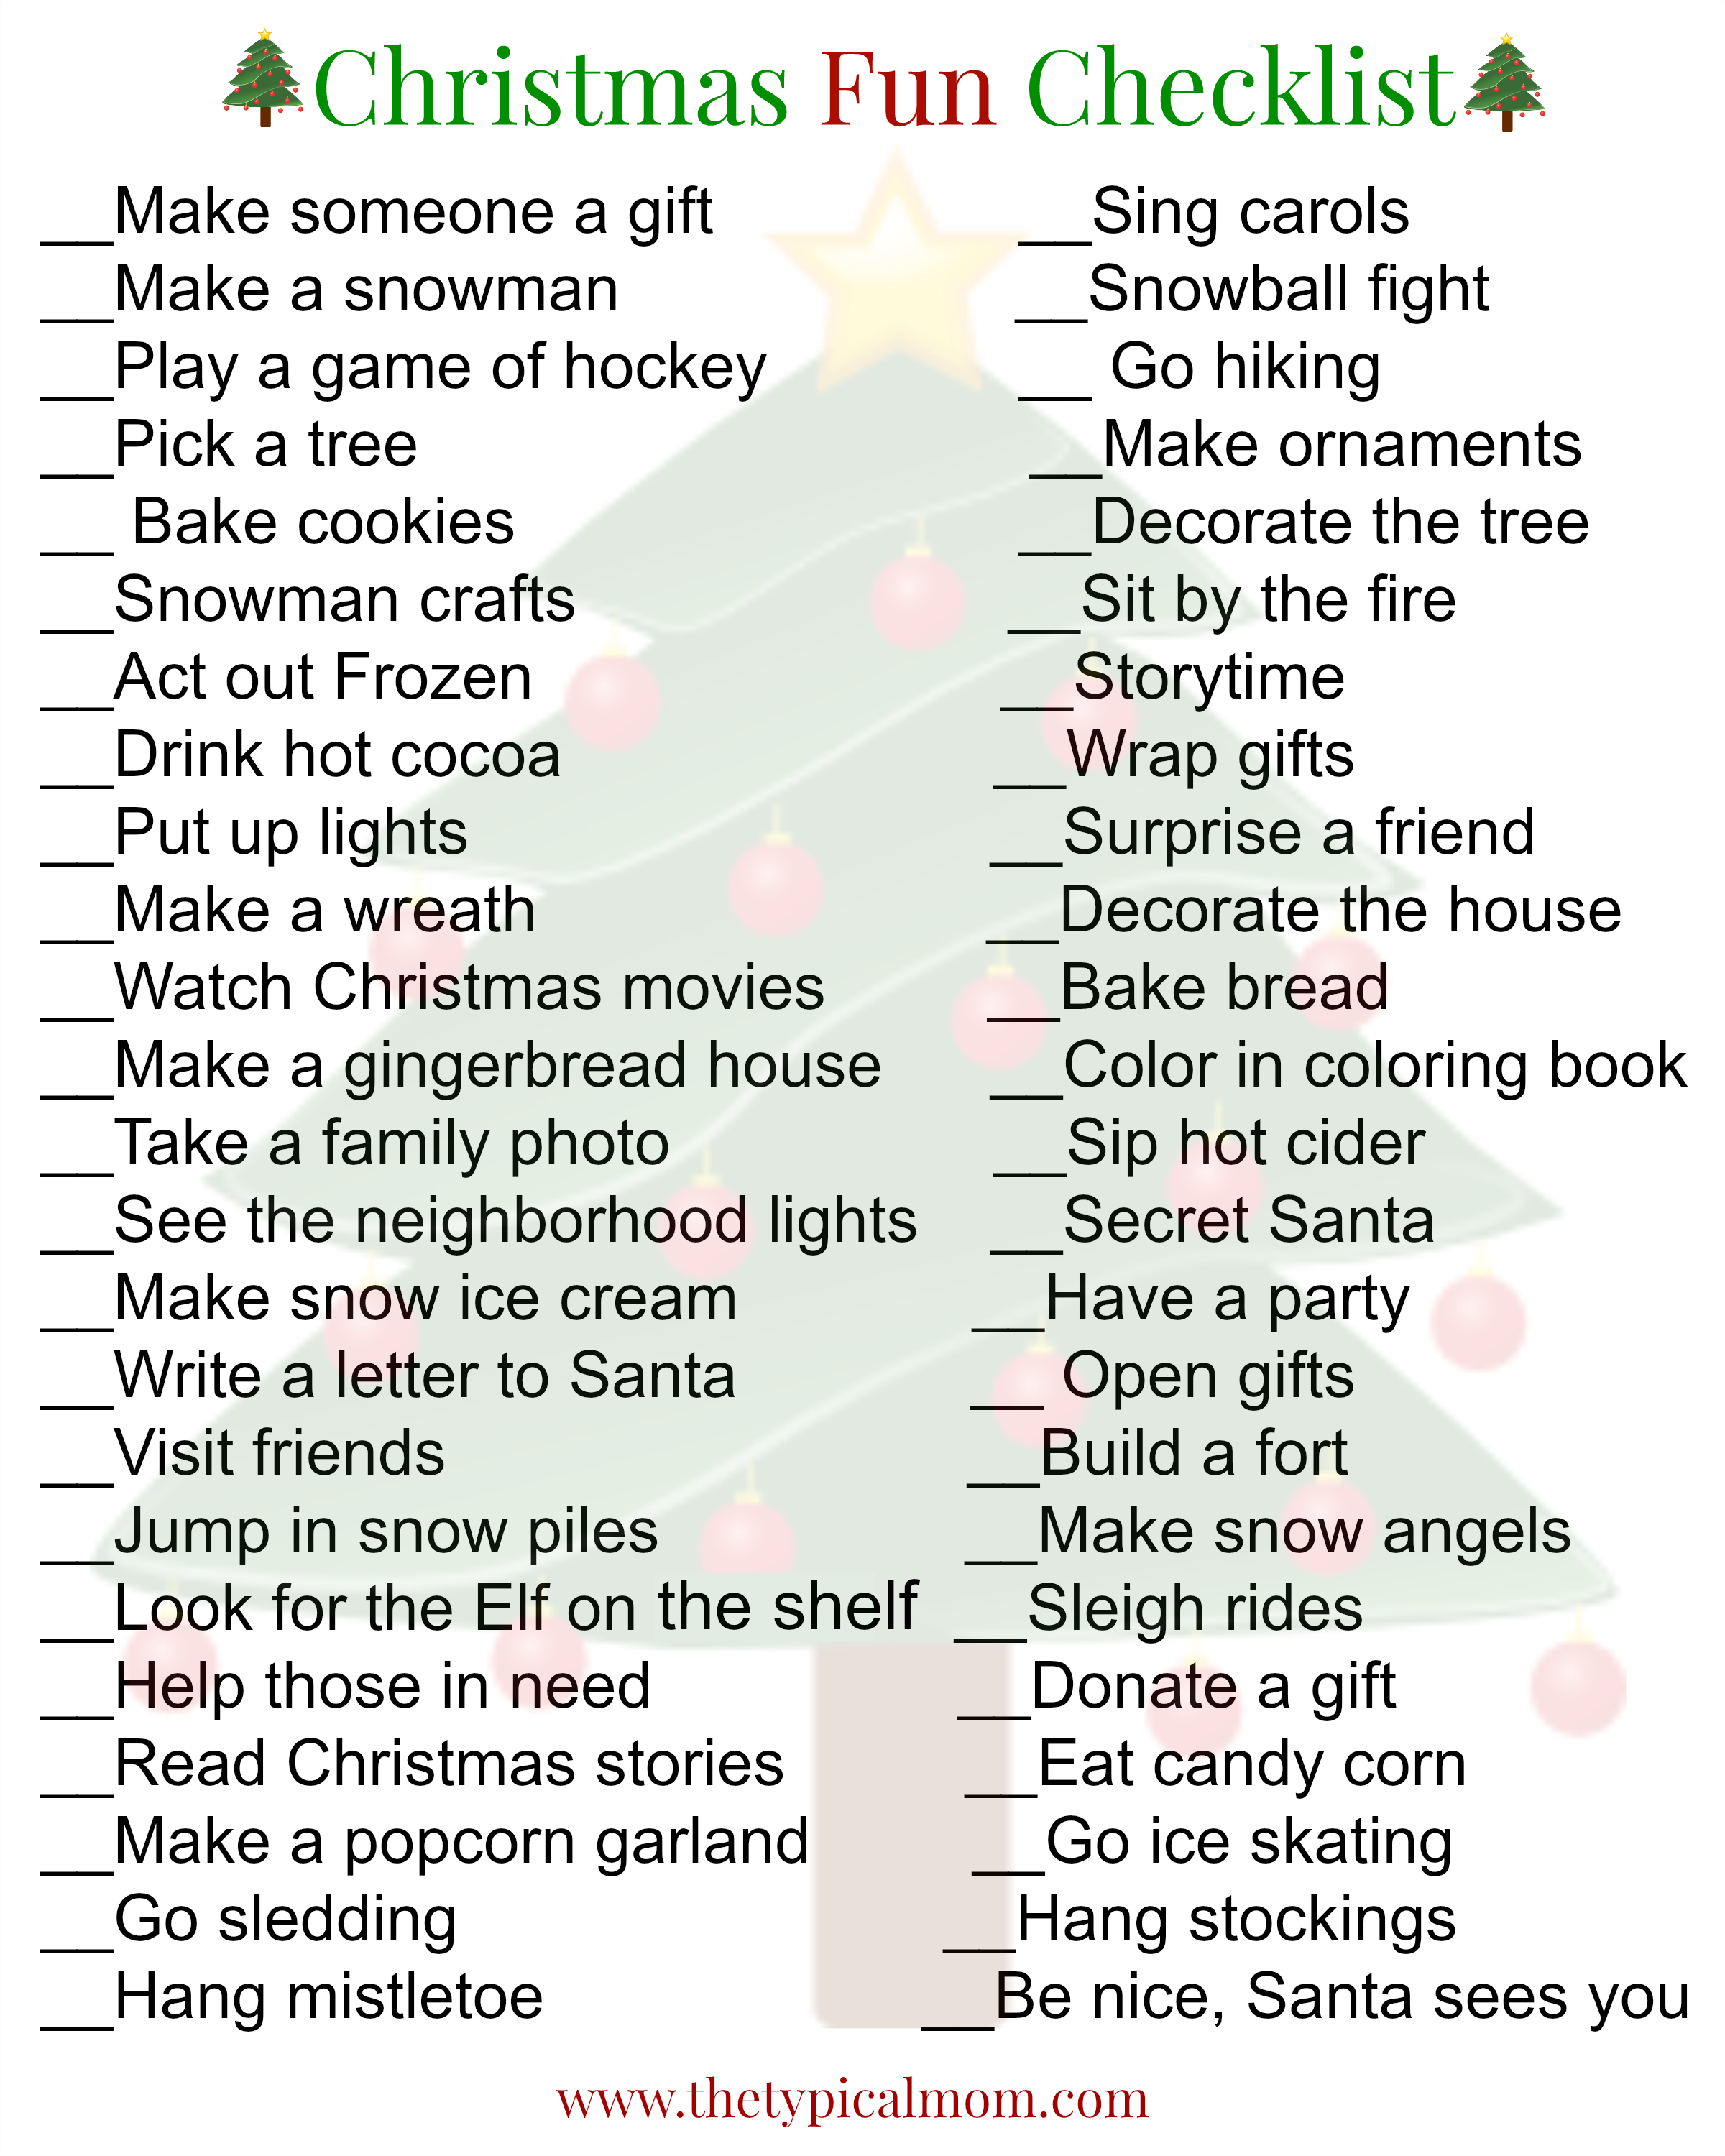 Christmas Activities For Kids Free Printable And Links To